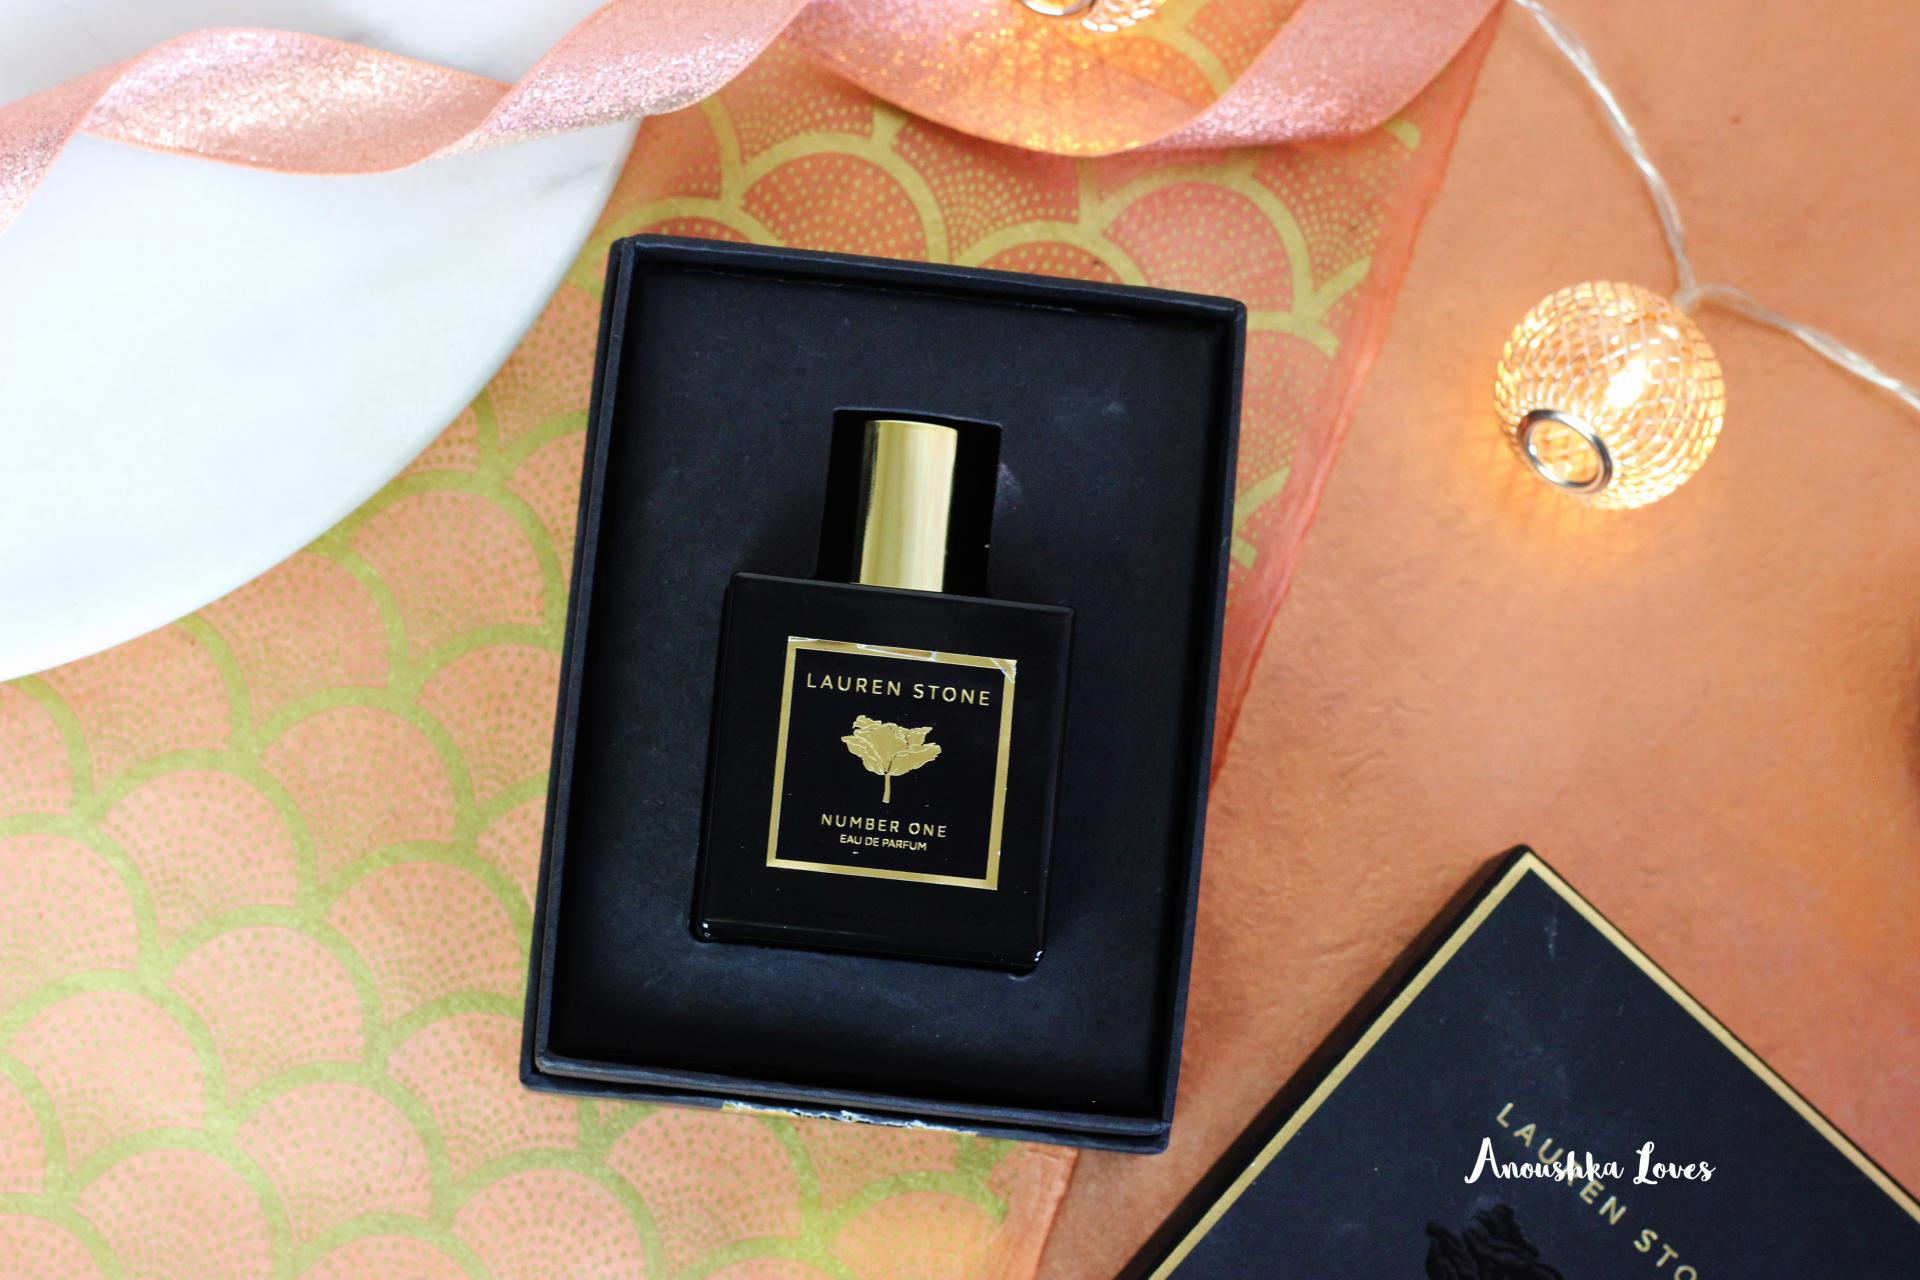 Number One by Lauren Stone Eau de Parfum